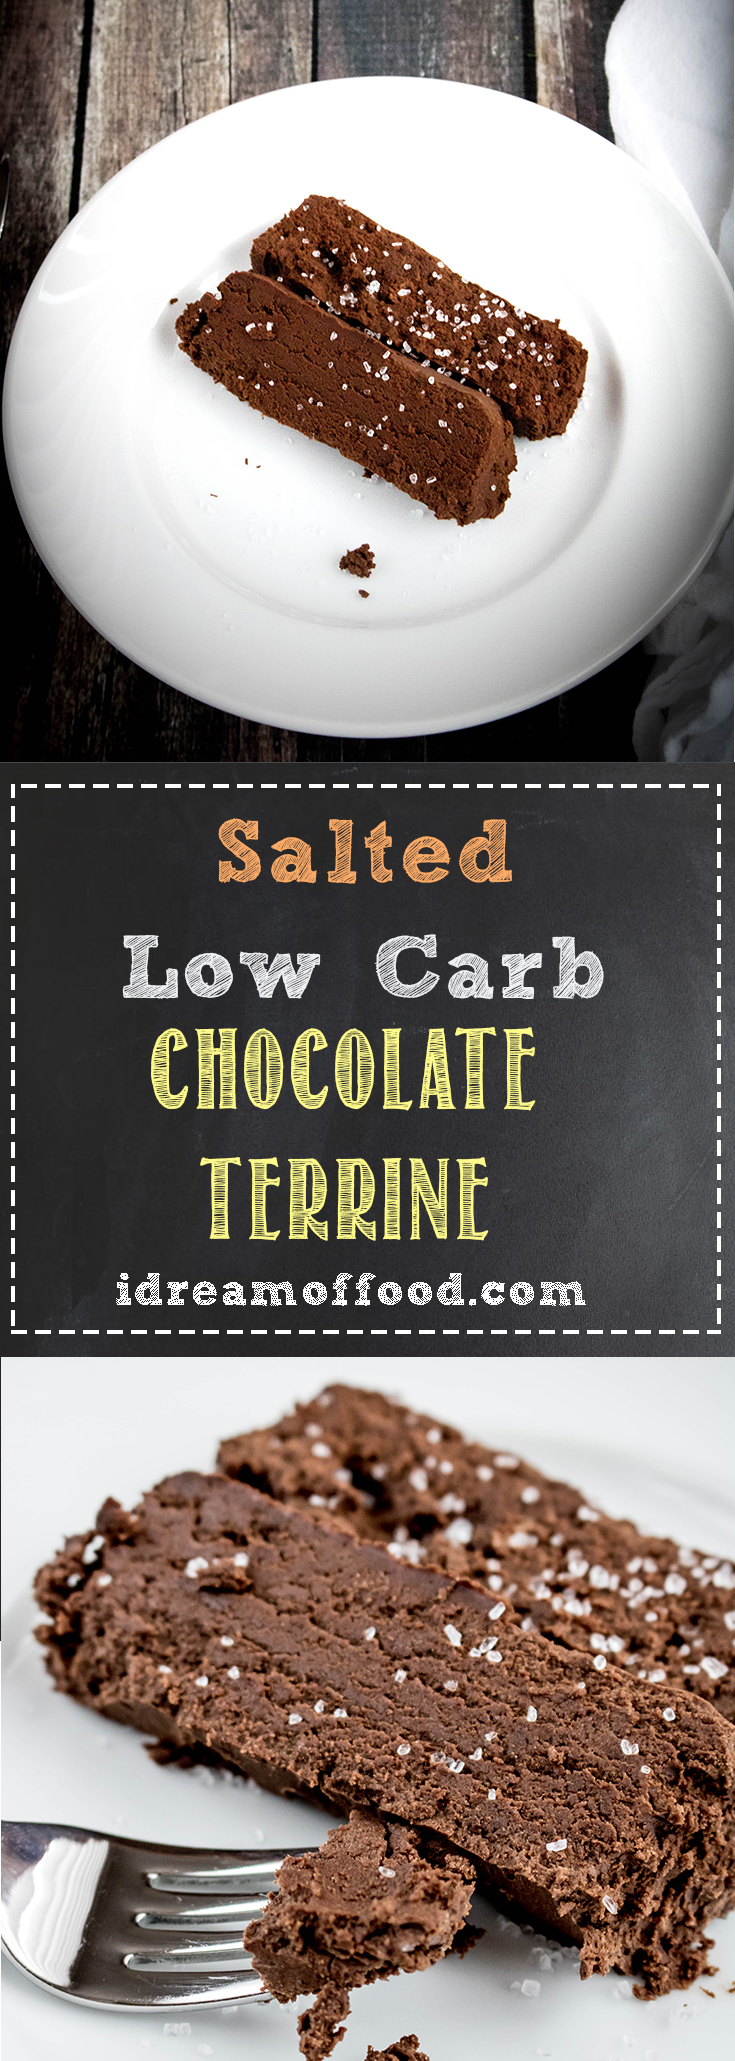 Are you looking for that perfect dessert to surprise your honey this Valentine's day? Do you love chocolate so much you'll use any excuse to have it? This Salted Chocolate Terrine is for you! By the way, this deliciousness is low-carb too. it's so rich, intense, smooth and chocolatey. No one will believe this dessert is low-carb. Its kind of like a flourless chocolate tort meets the most decadent chocolate fudge, but then there's the sea salt flirting with it all. www.idreamoffood.com